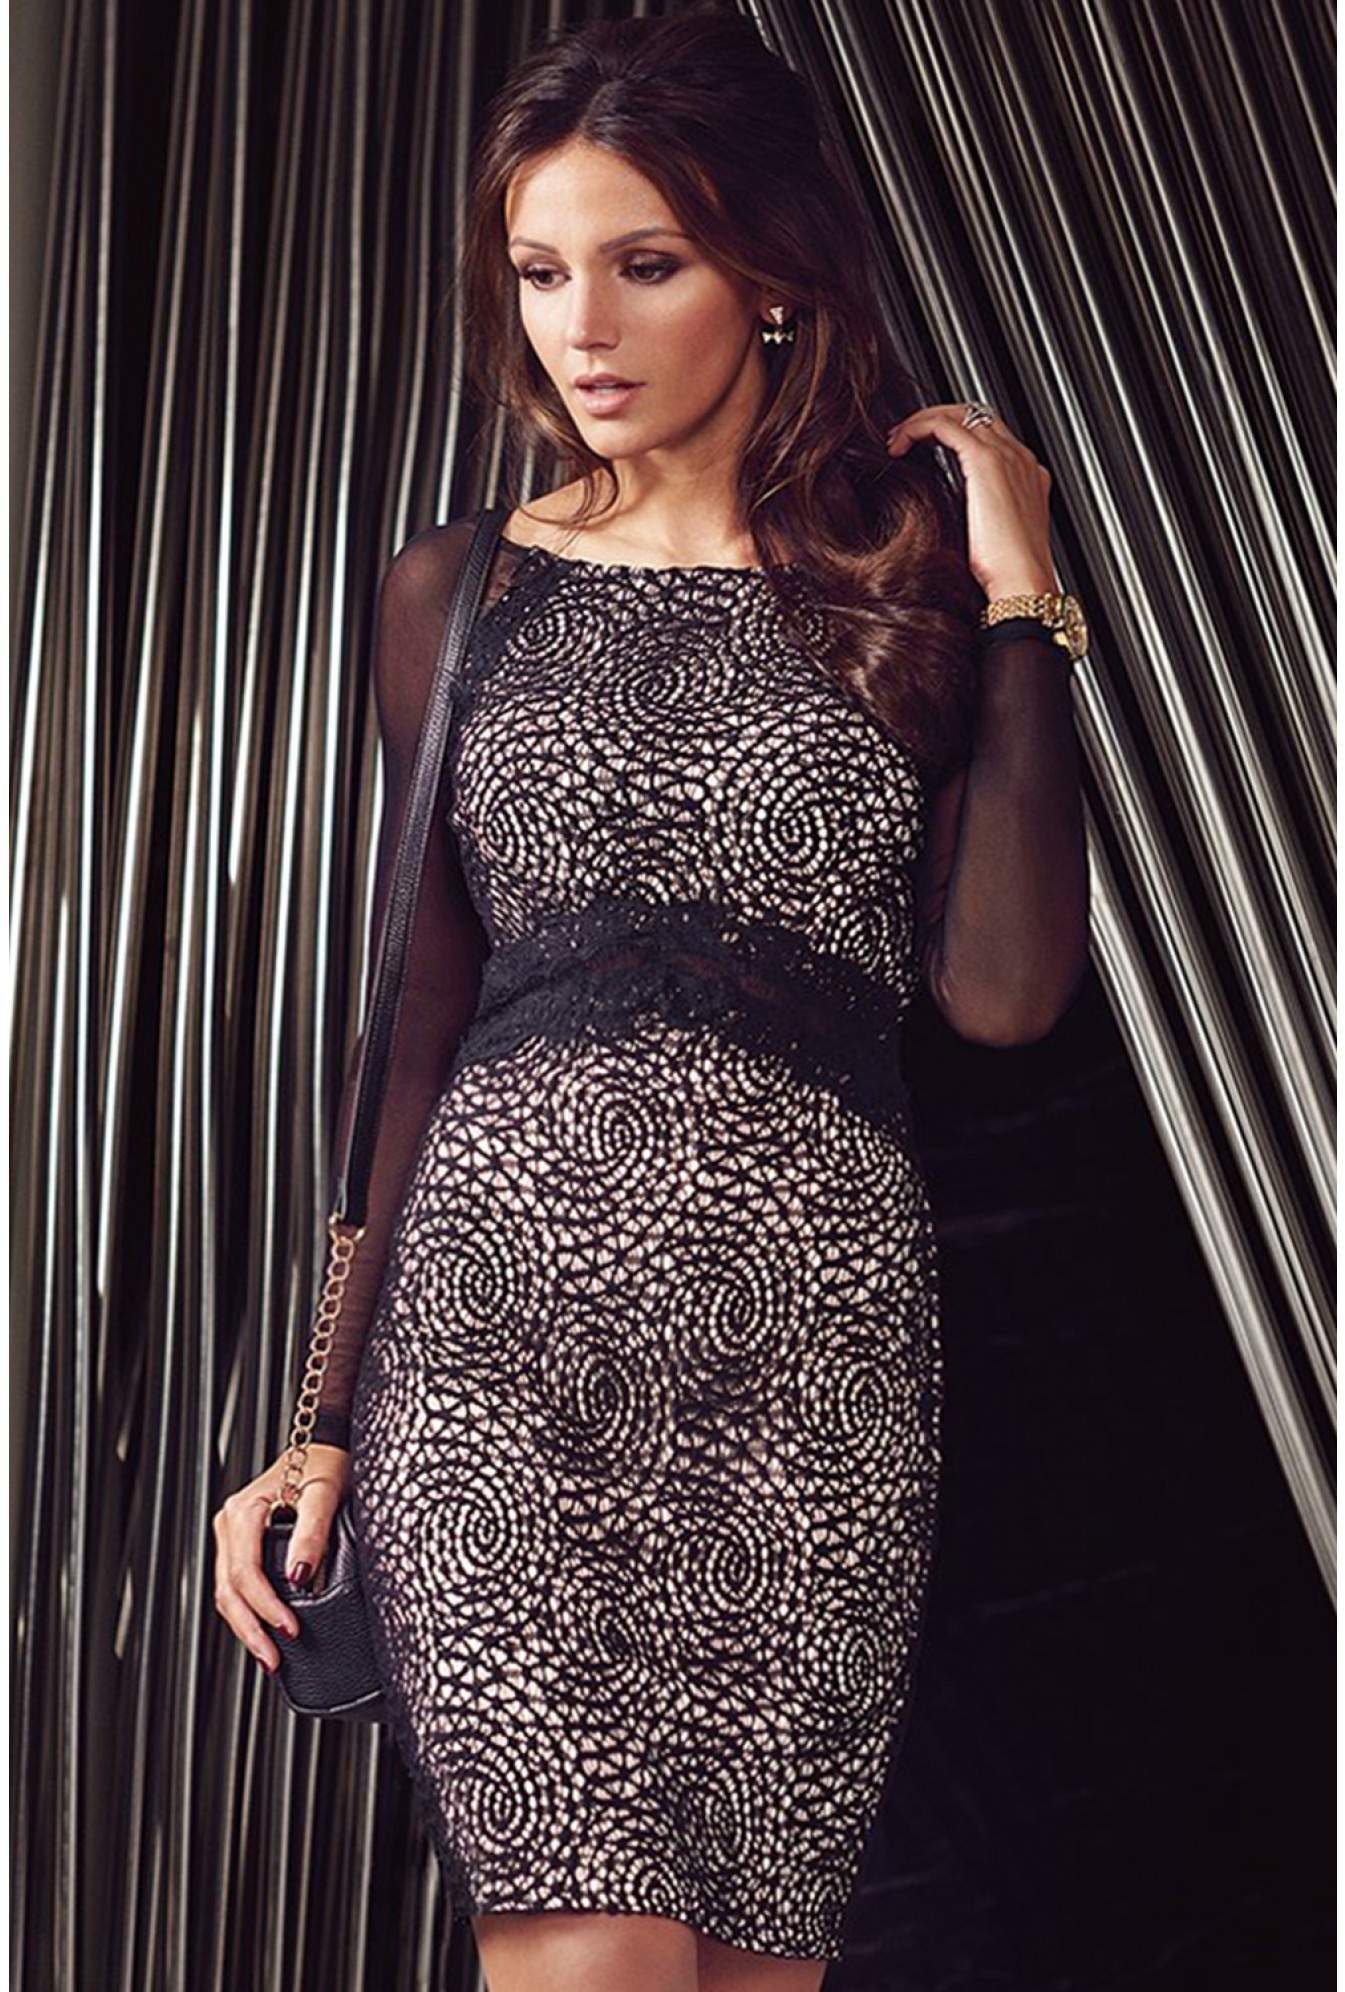 f4b56fa5a807f Lipsy Michelle Keegan Sheer Lace Midi Dress